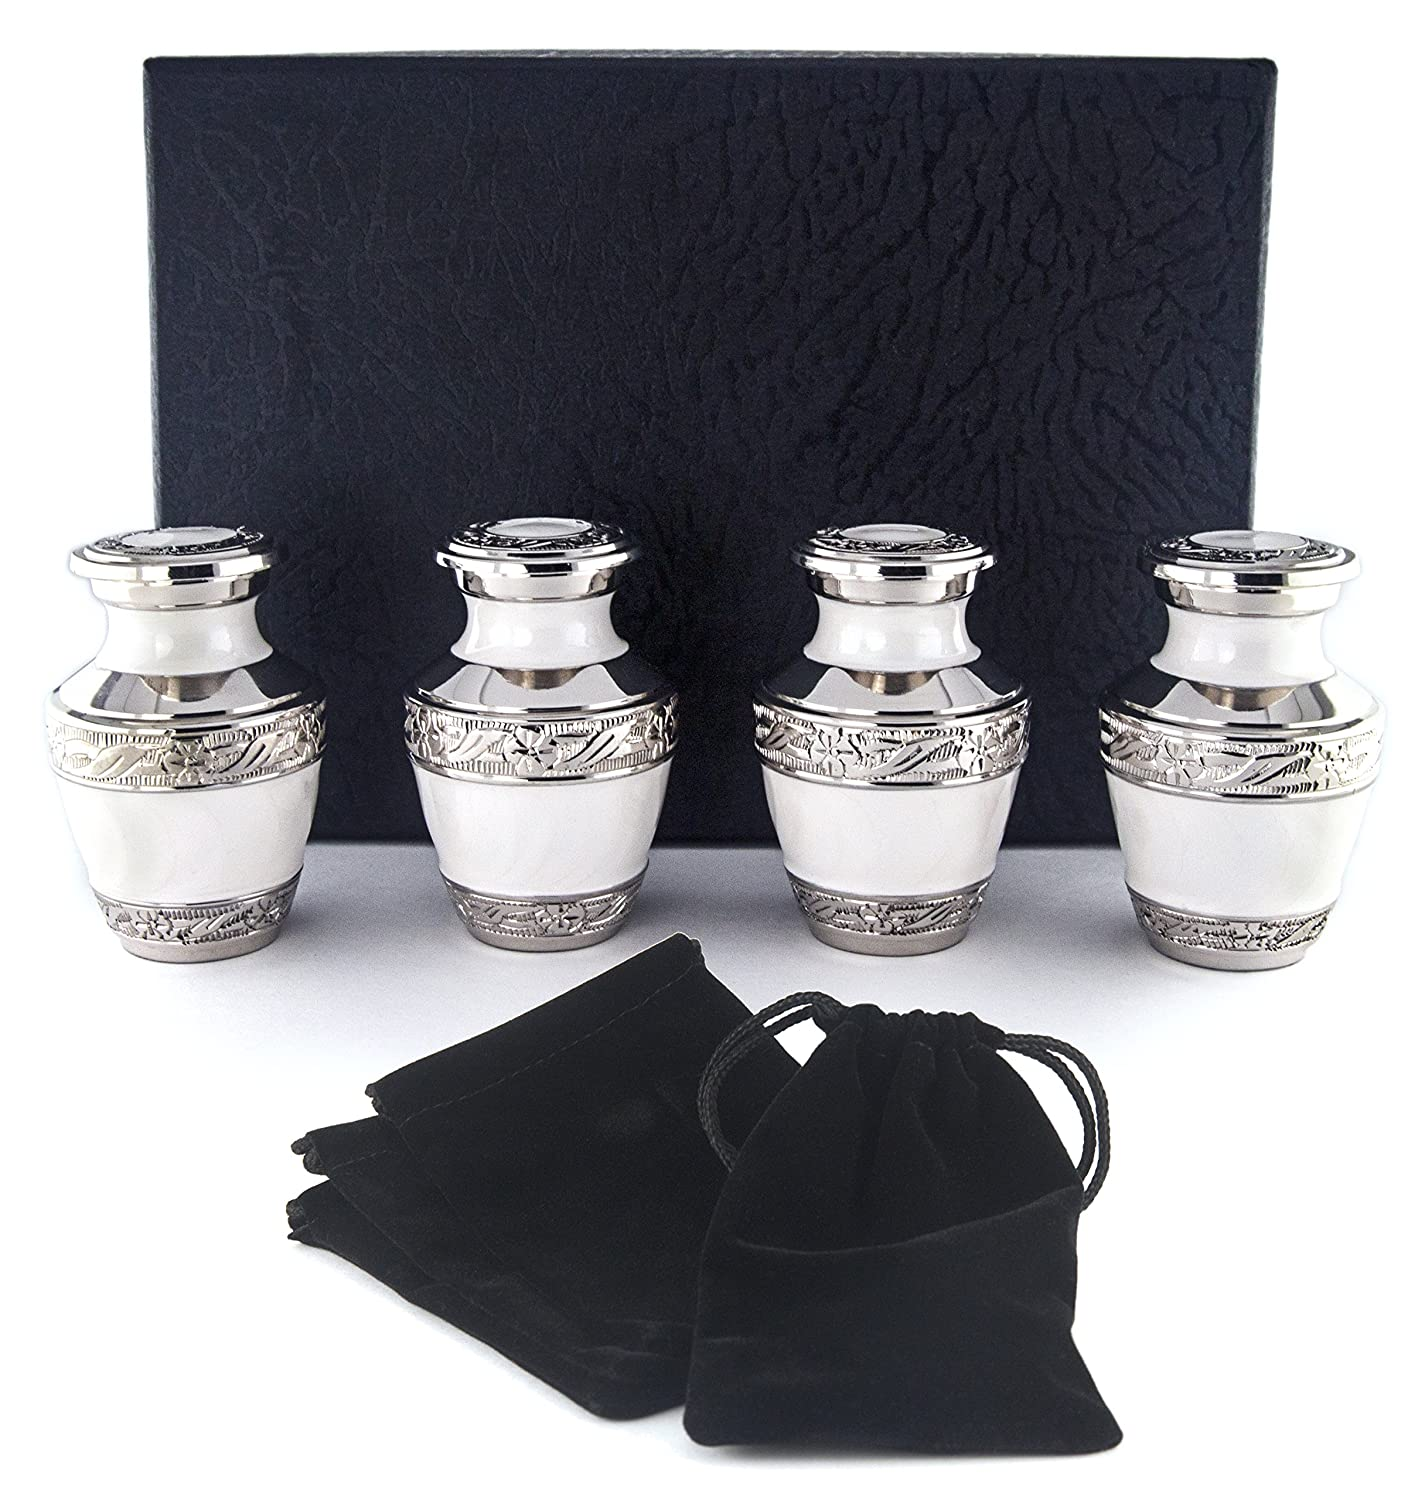 Small Cremation Urns for Human Ashes by Adera Dreams - Pearl White Mini Keepsake Urn Set of 4 - With Premium Case and Velvet Carrying Pouches - Miniature Memorial Funeral Urns for Sharing Ashes